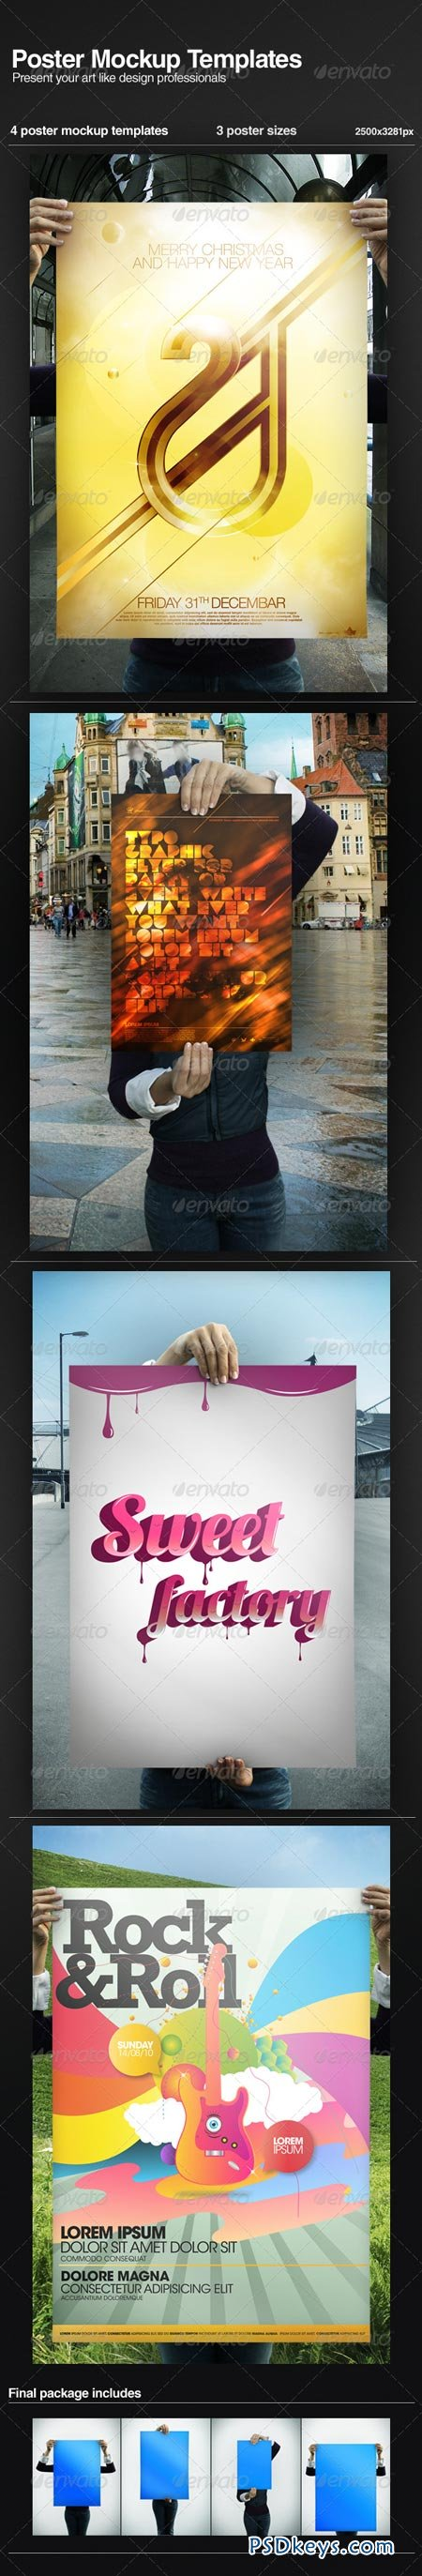 Poster Mock-up Templates 151546